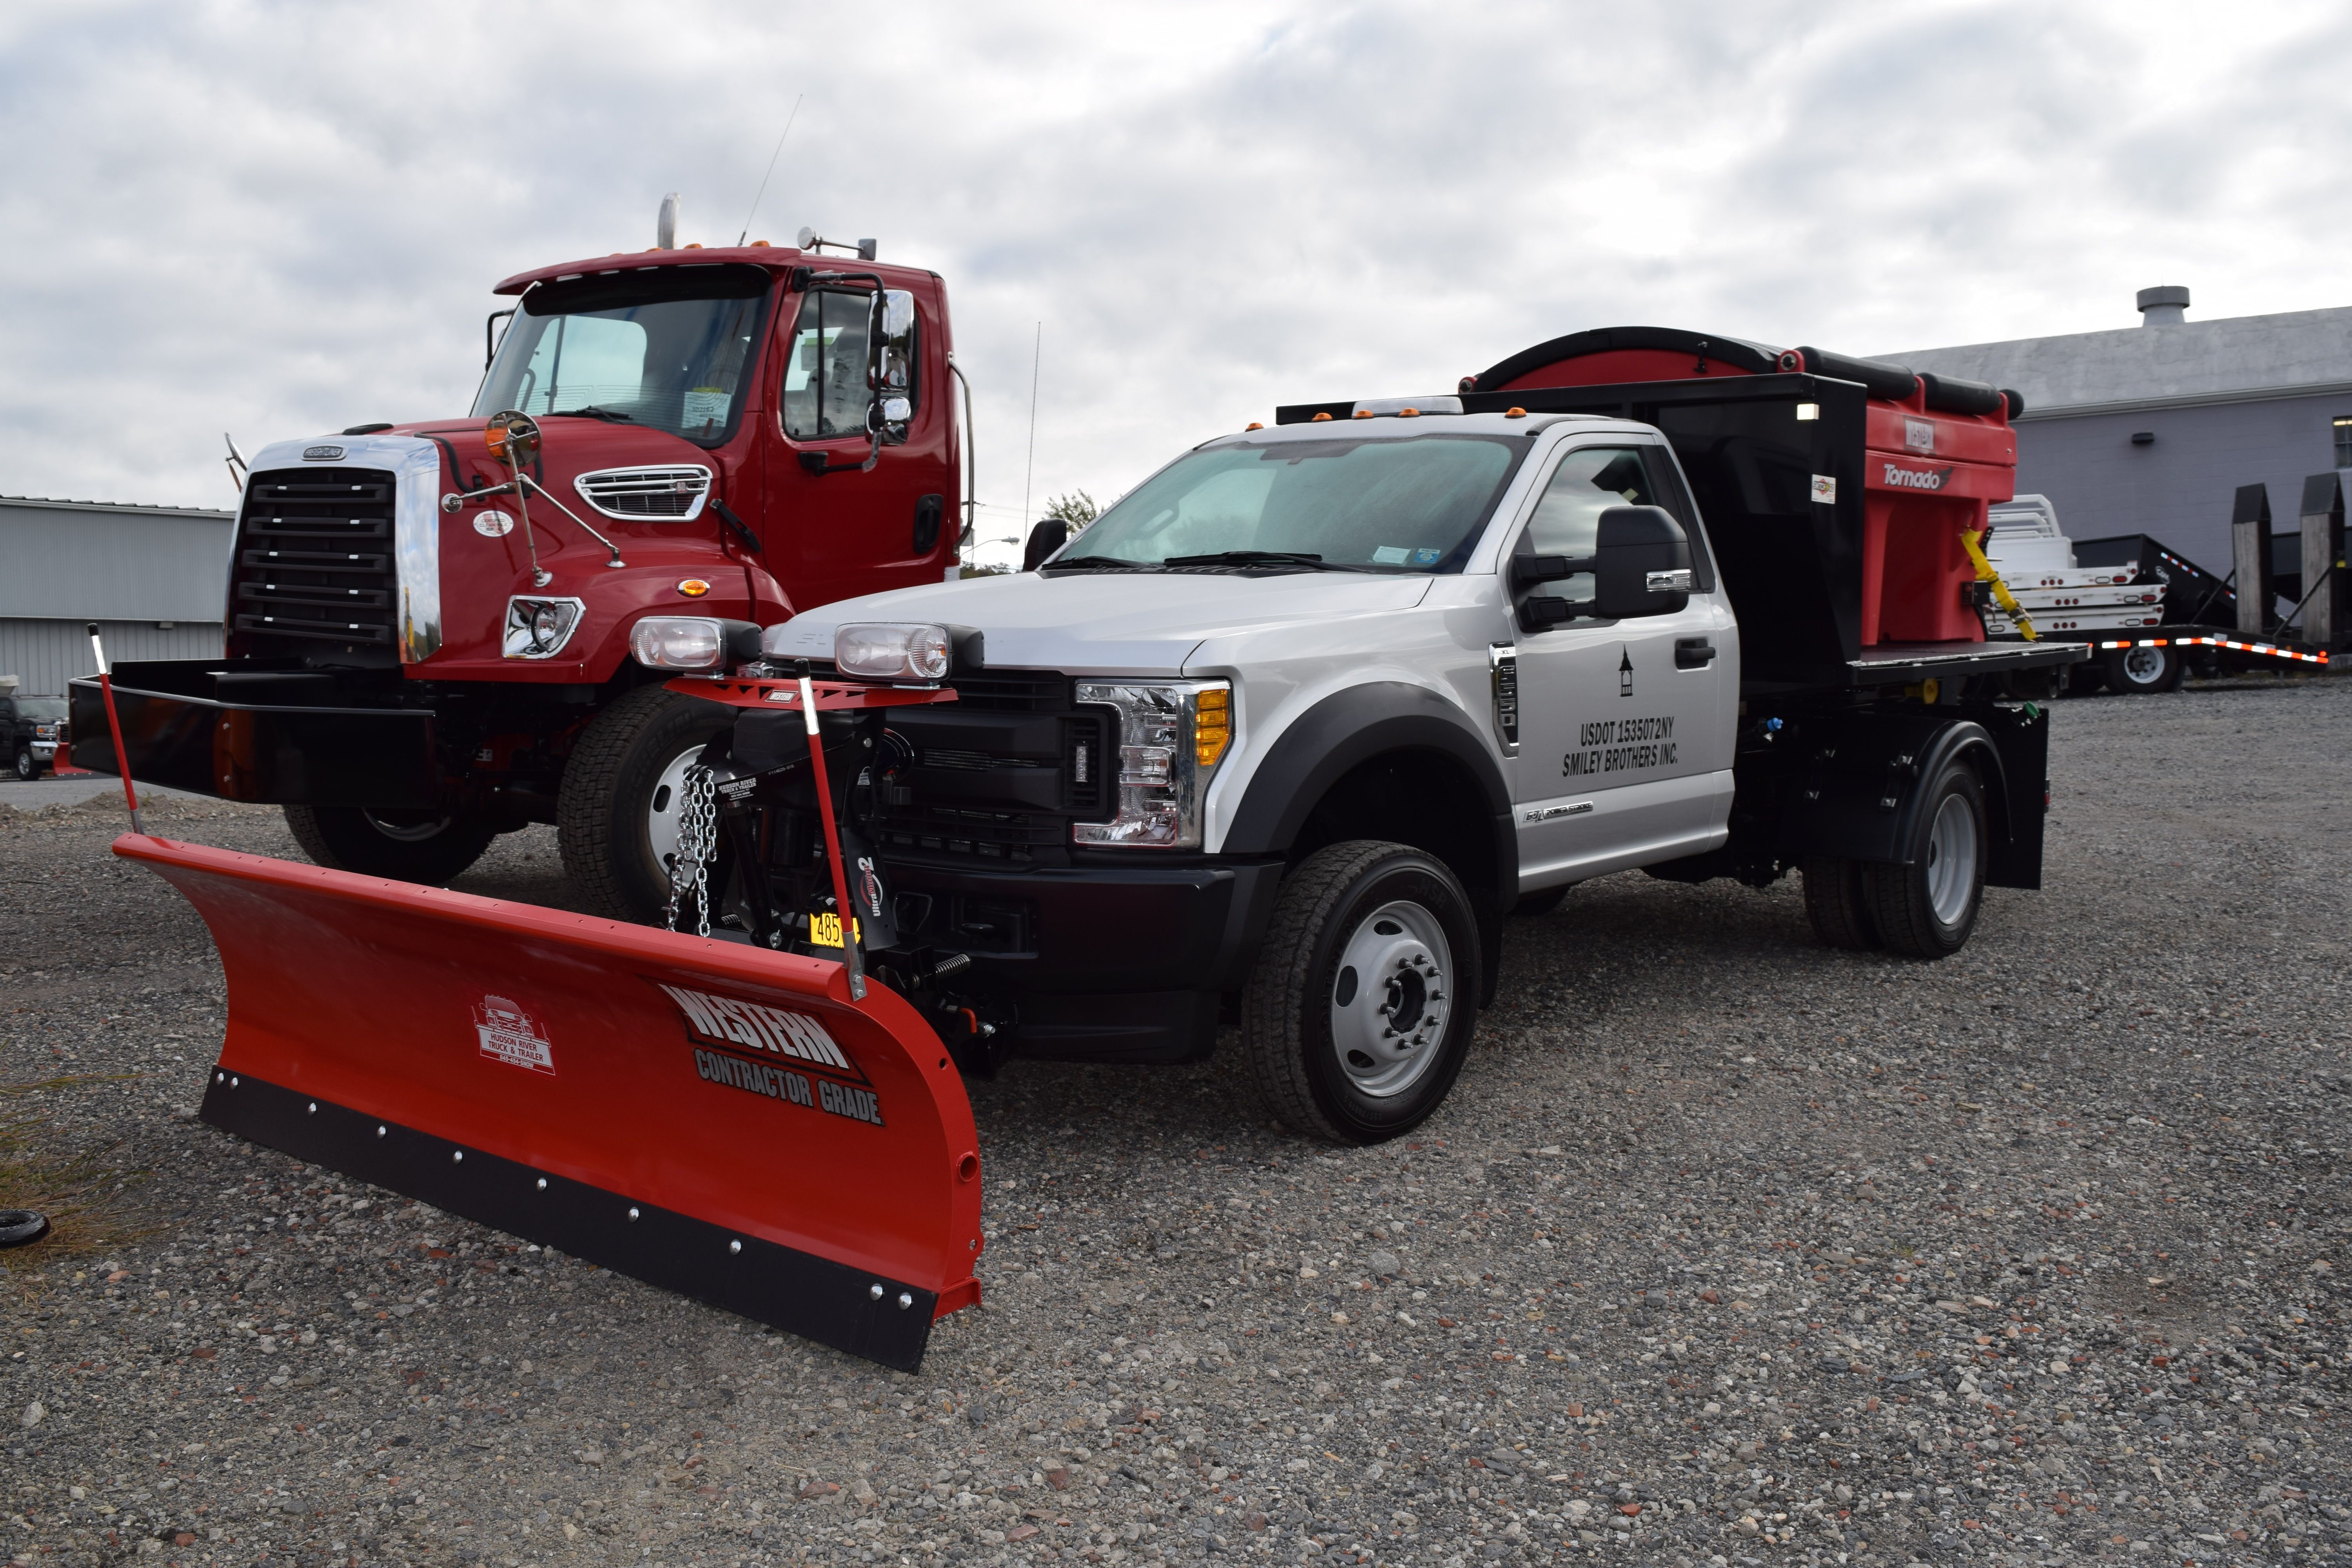 This F550 Was Outfitted With A Switch N Go Multi Body System Myers Plow Wiring Diagram Sv2 Western Plows 9 Proplus Snowplow 25 Yard Tornado Poly Sander